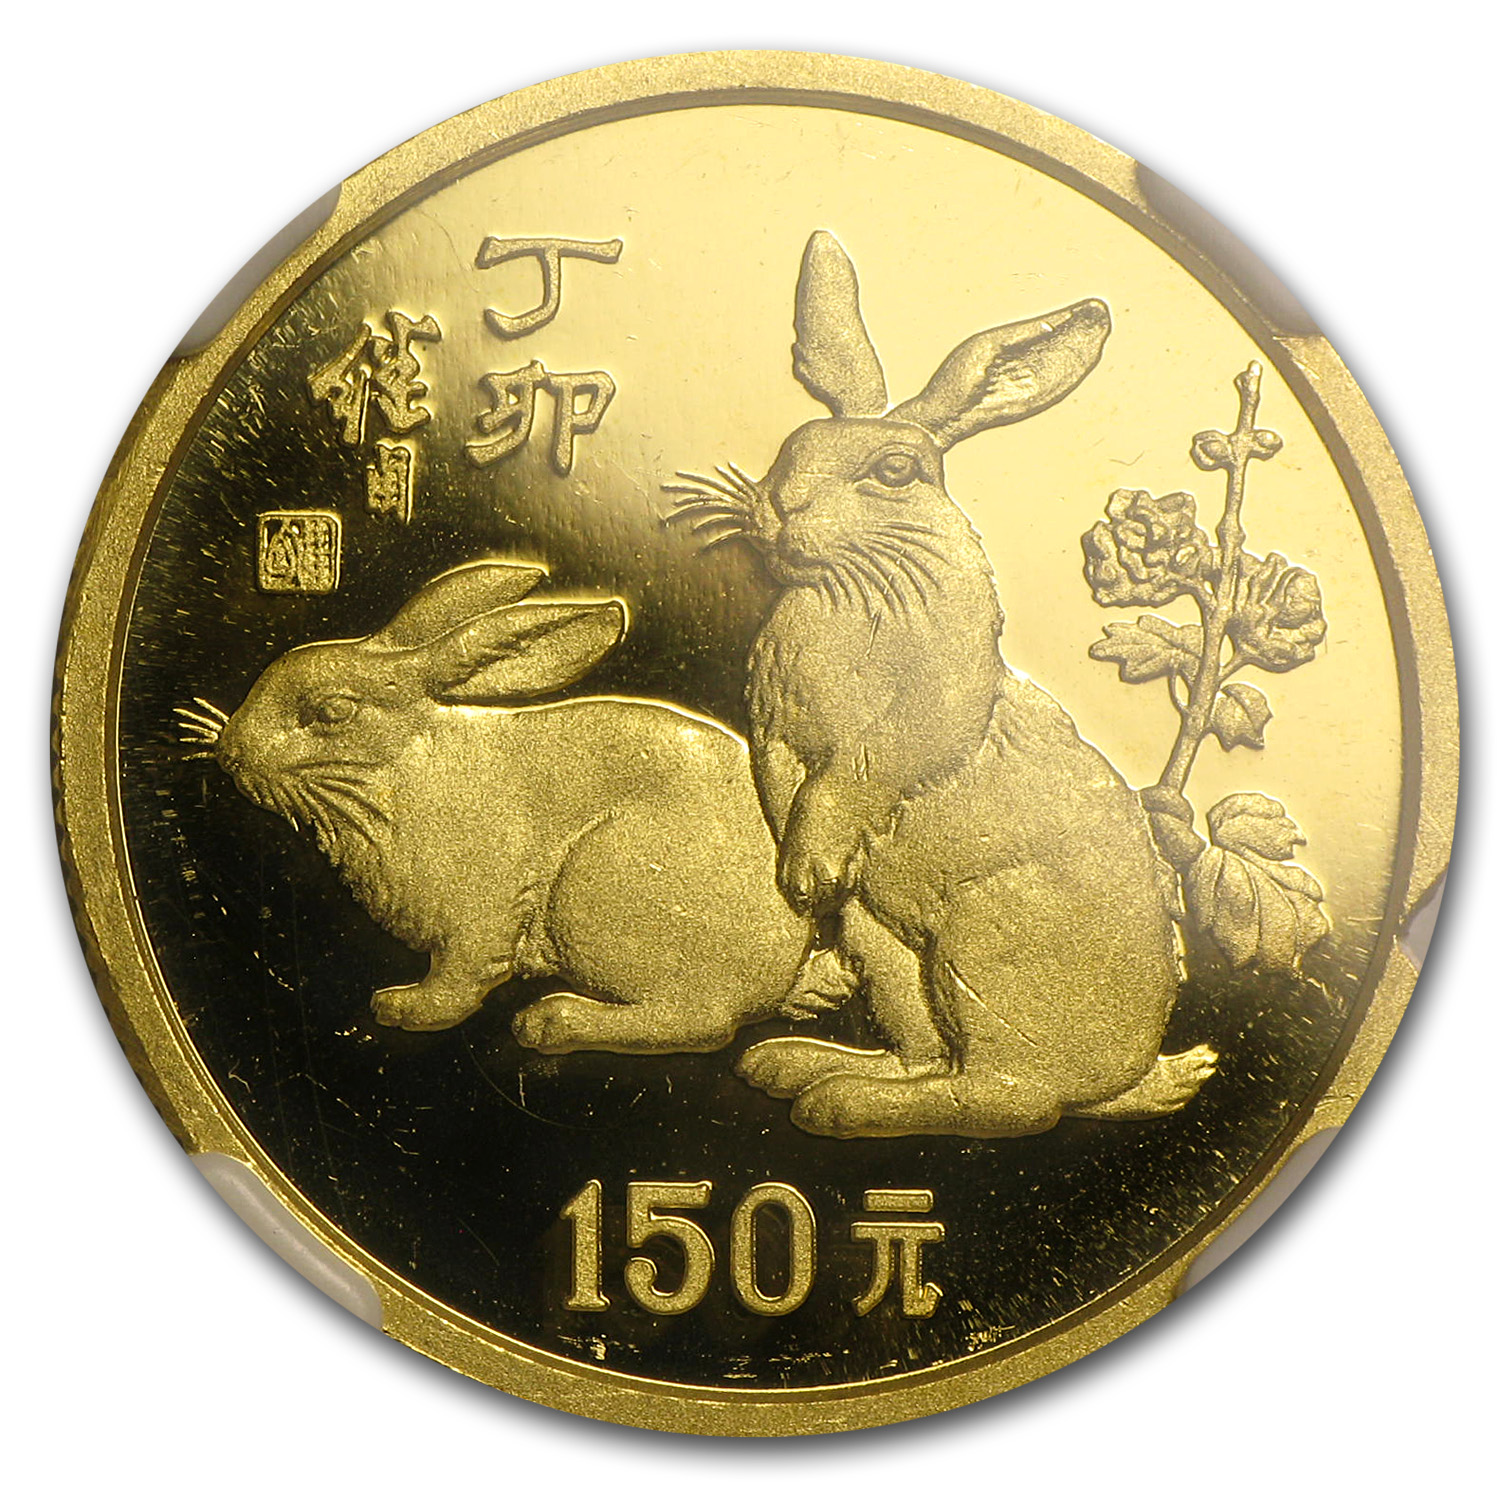 1987 China 8 g Gold Year of the Rabbit Proof Details NGC